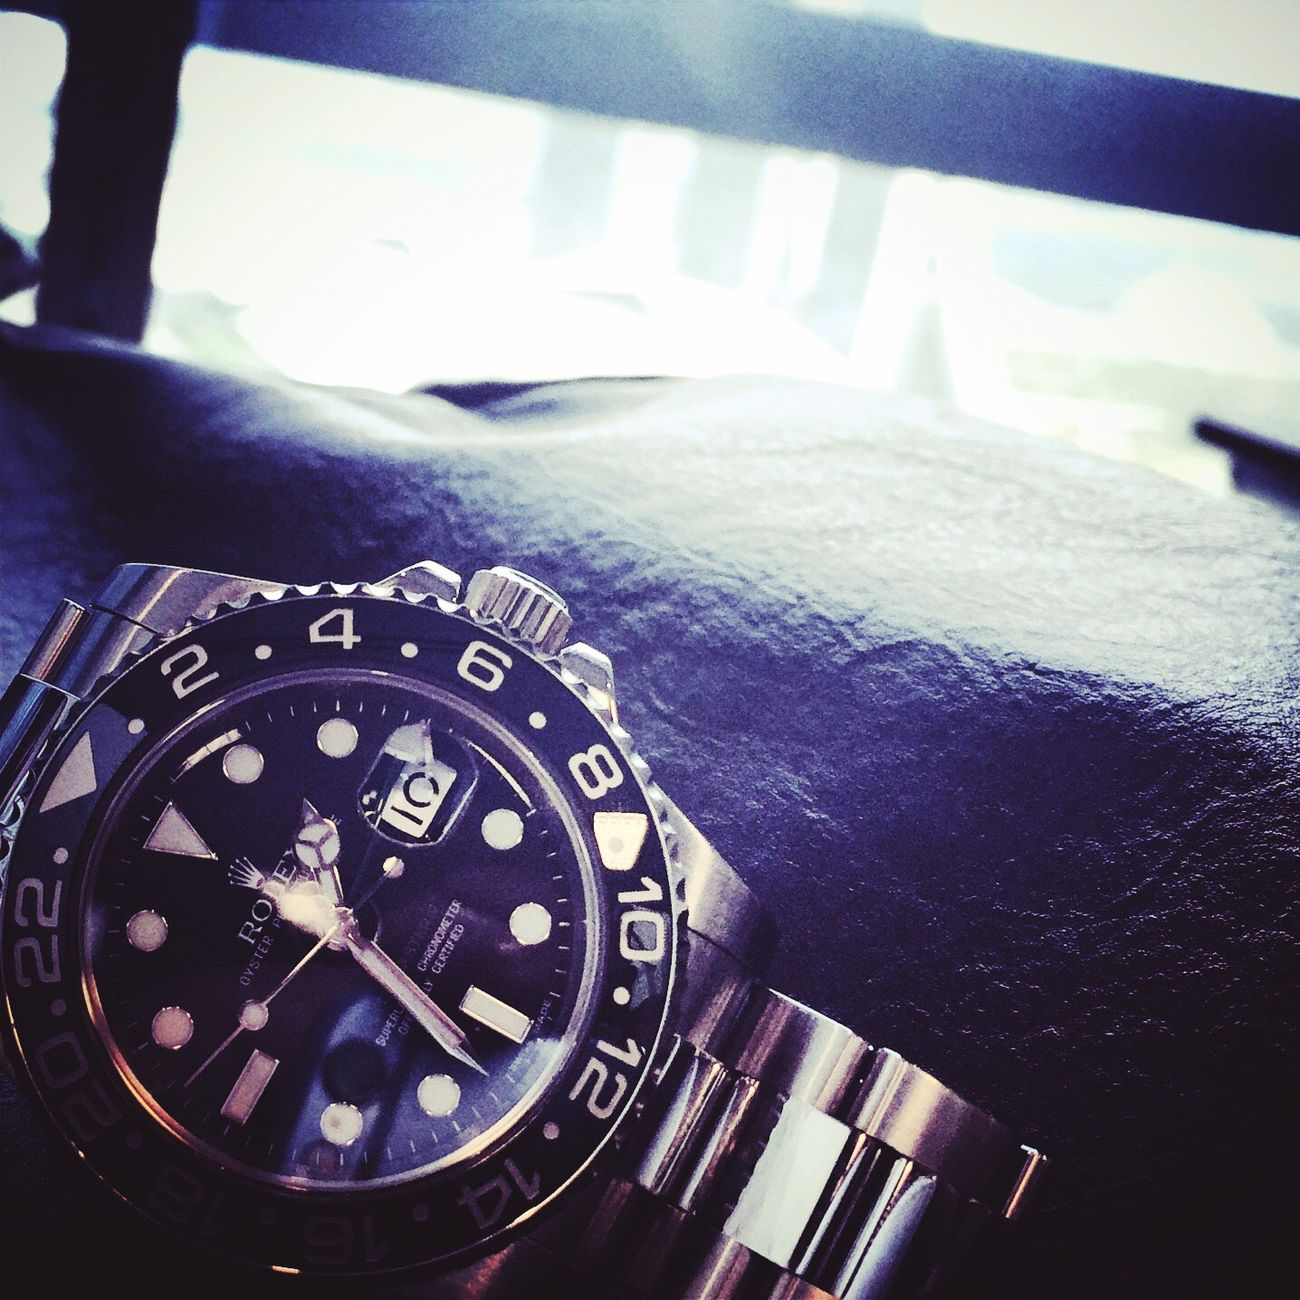 Rolex Check This Out Taking Photos Watches Wristporn Gmtmaster2 Greenhand Luxury Hi! Singapore